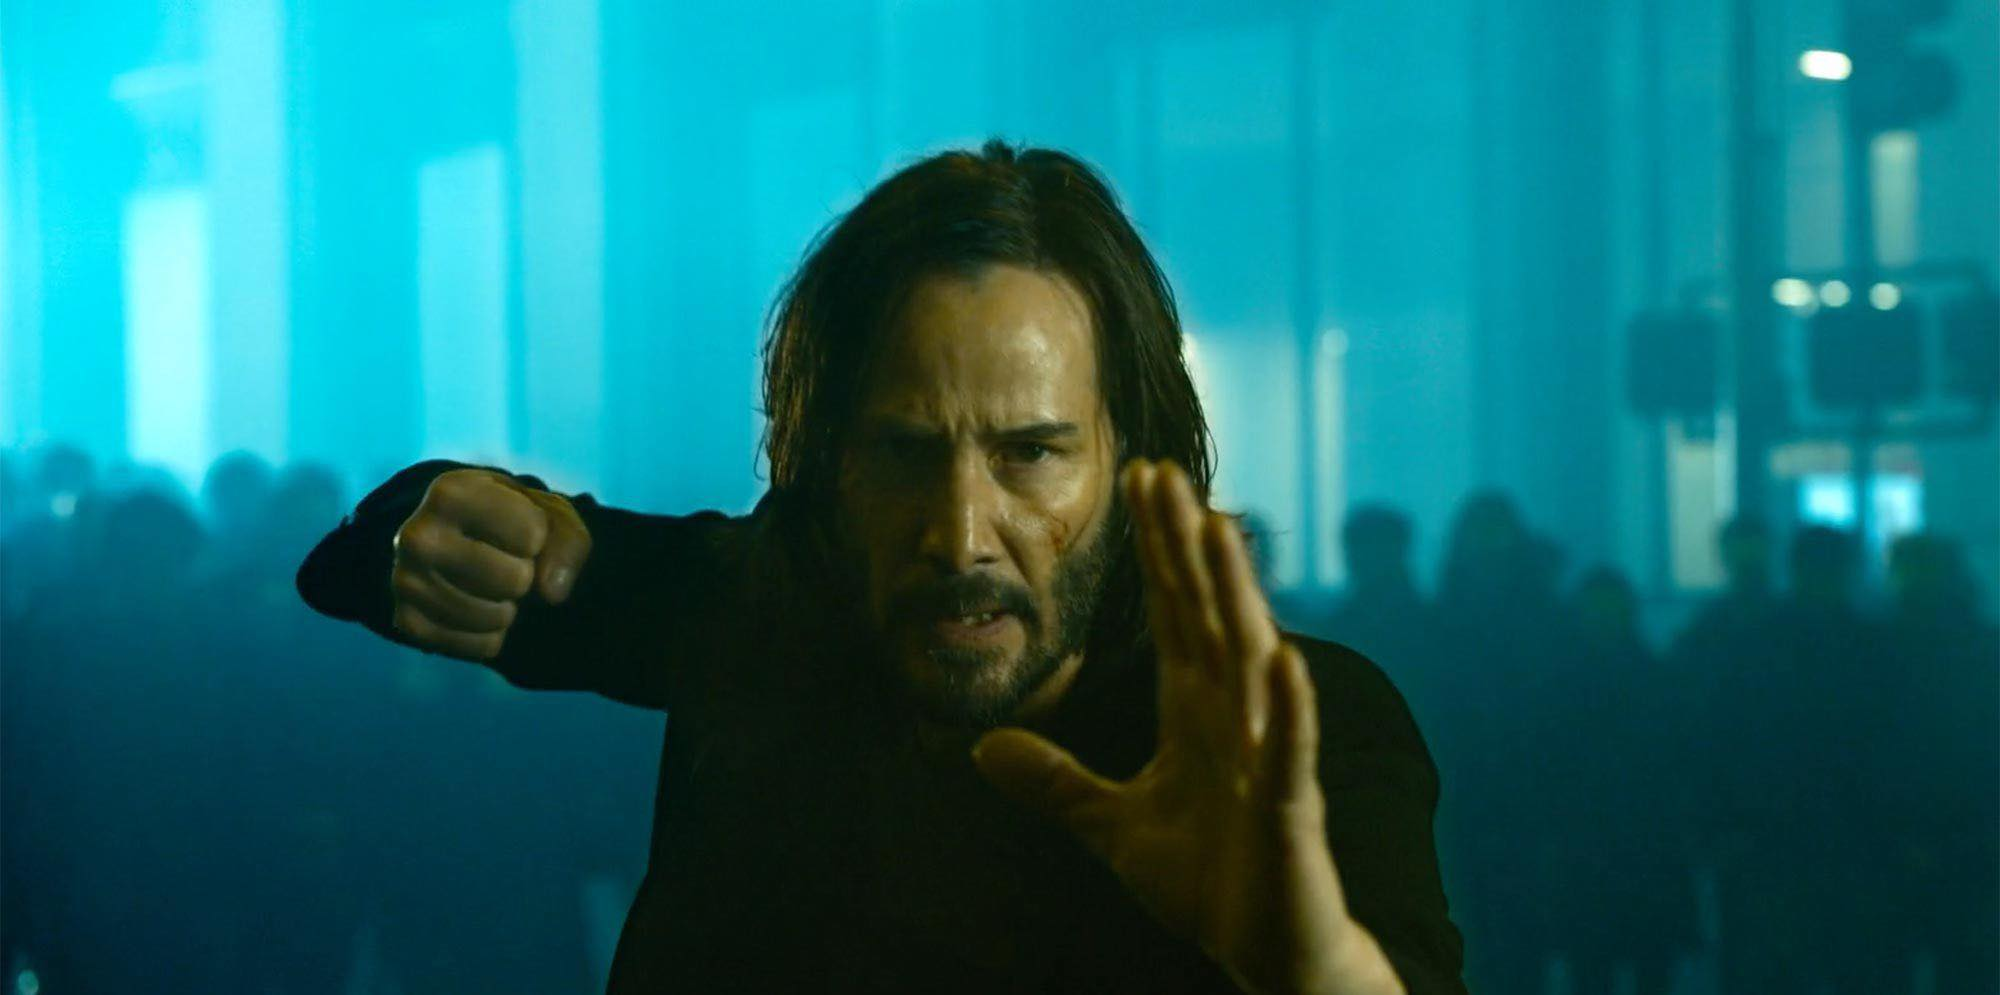 Keanu Reeves as Neo in The Matrix Resurrections